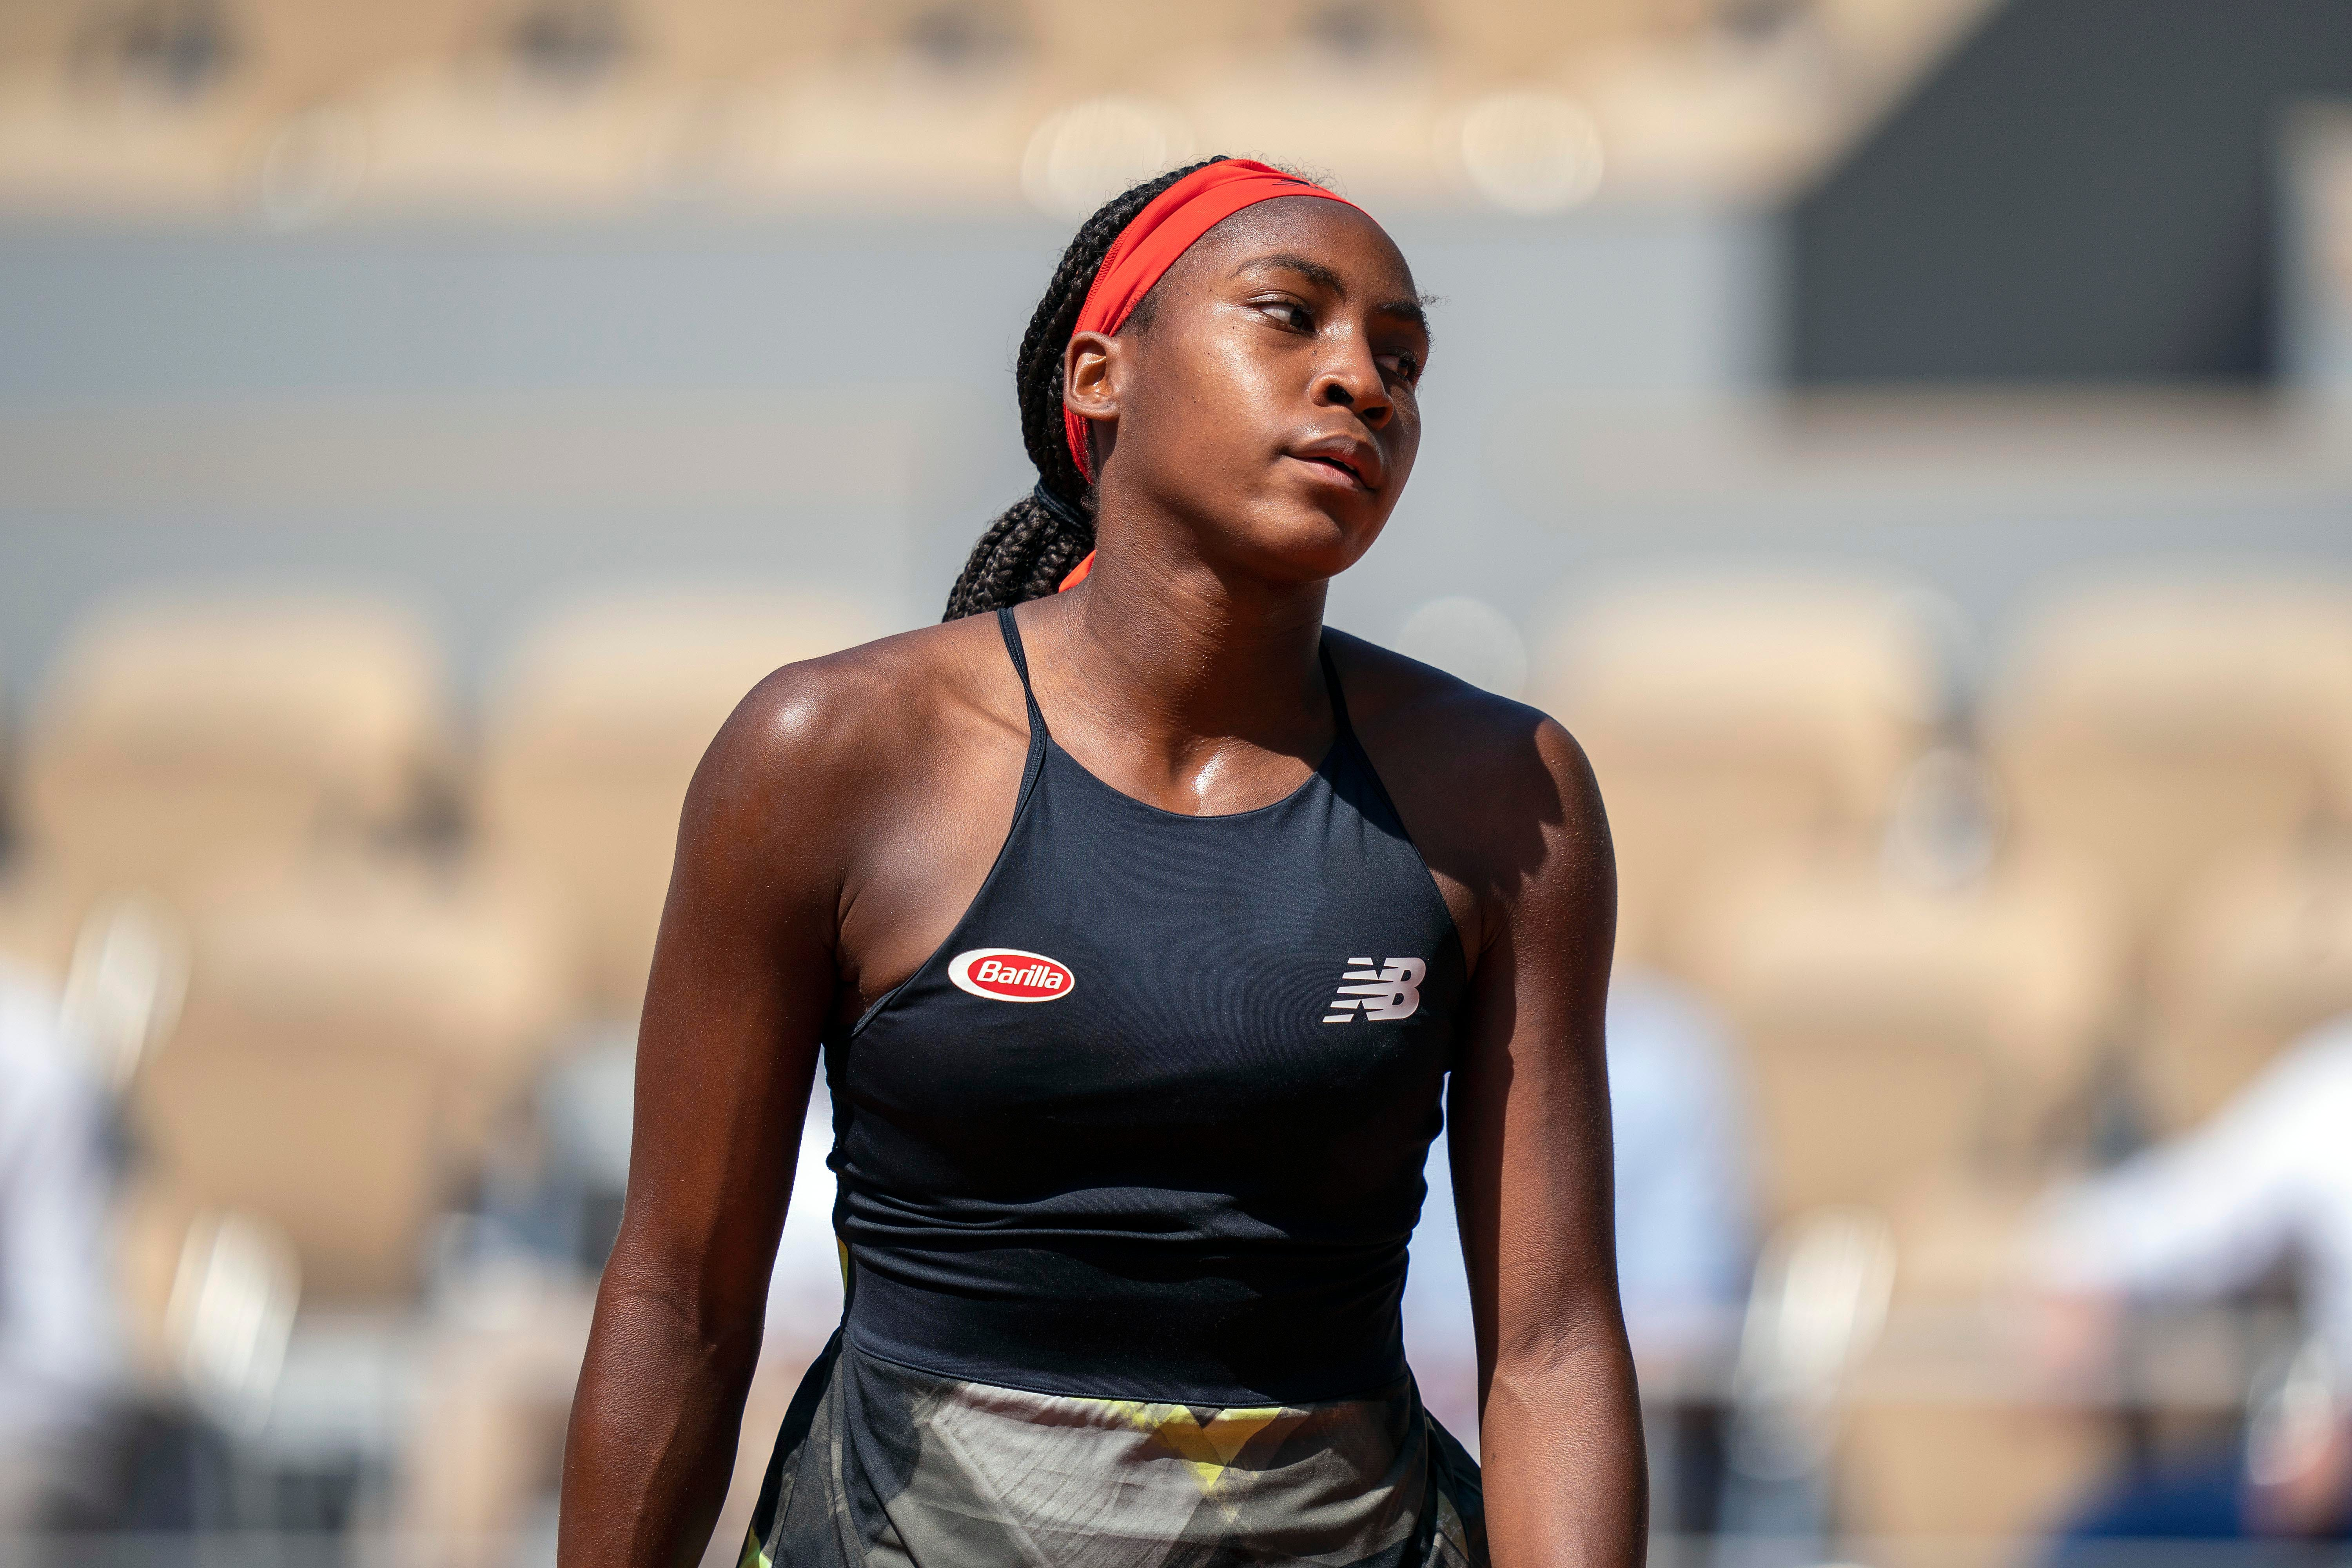 Opinion: Coco Gauff's loss in French Open a disappointment and reminder greatness will take time